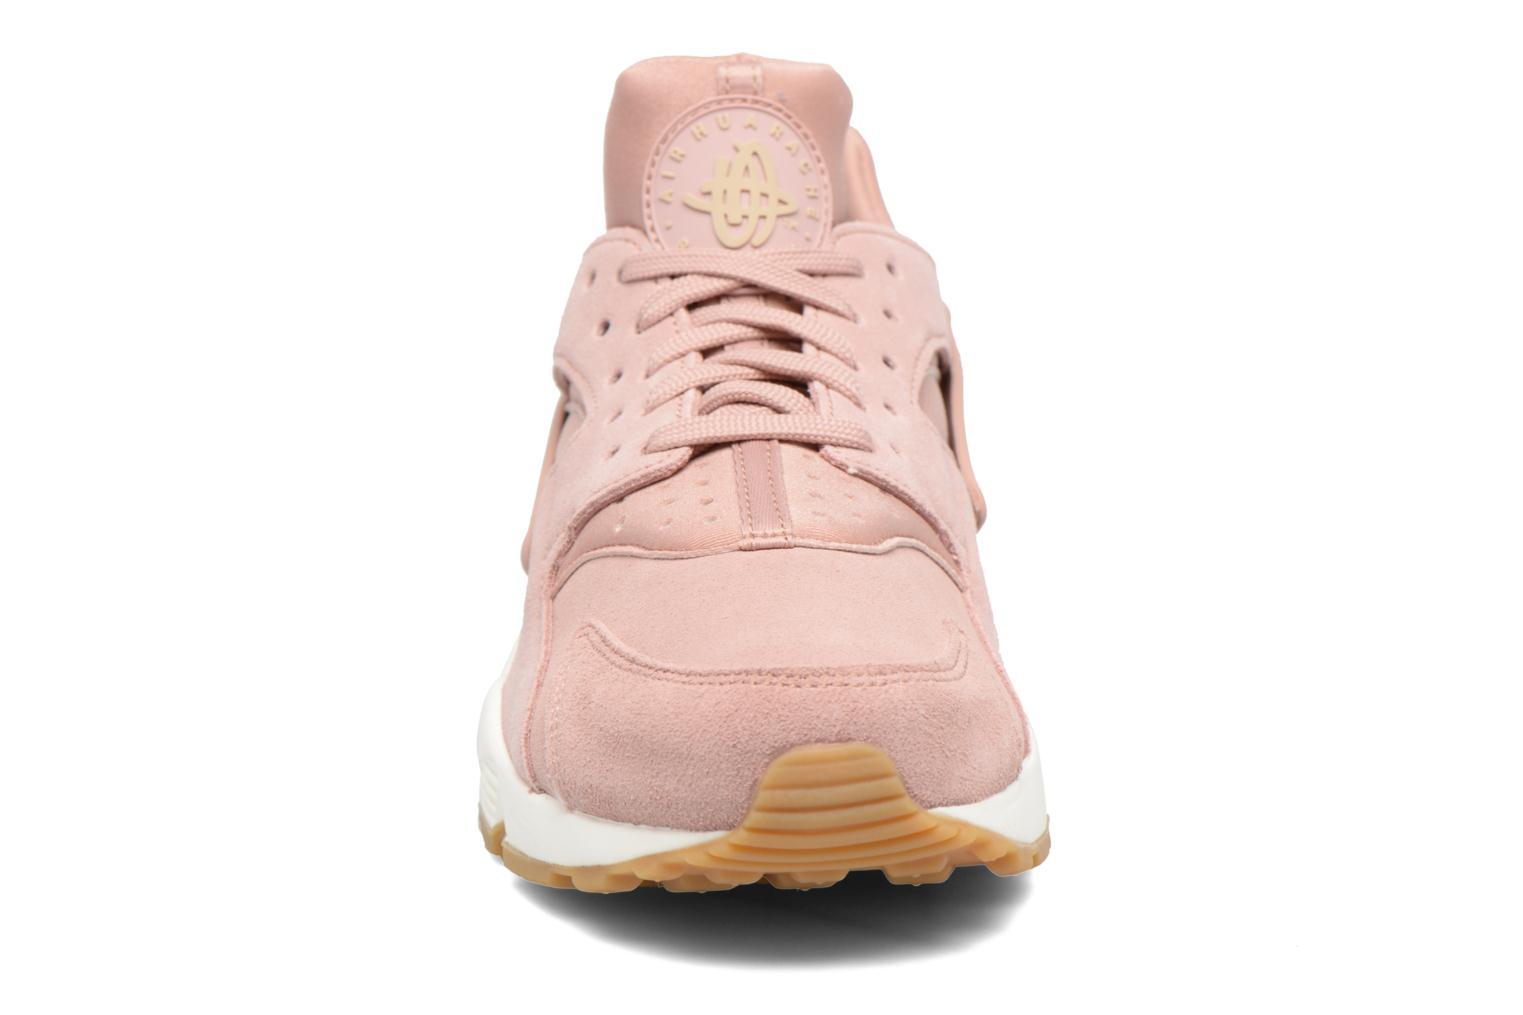 Wmns Air Huarache Run Sd Particle Pink/Mushroom-Sail